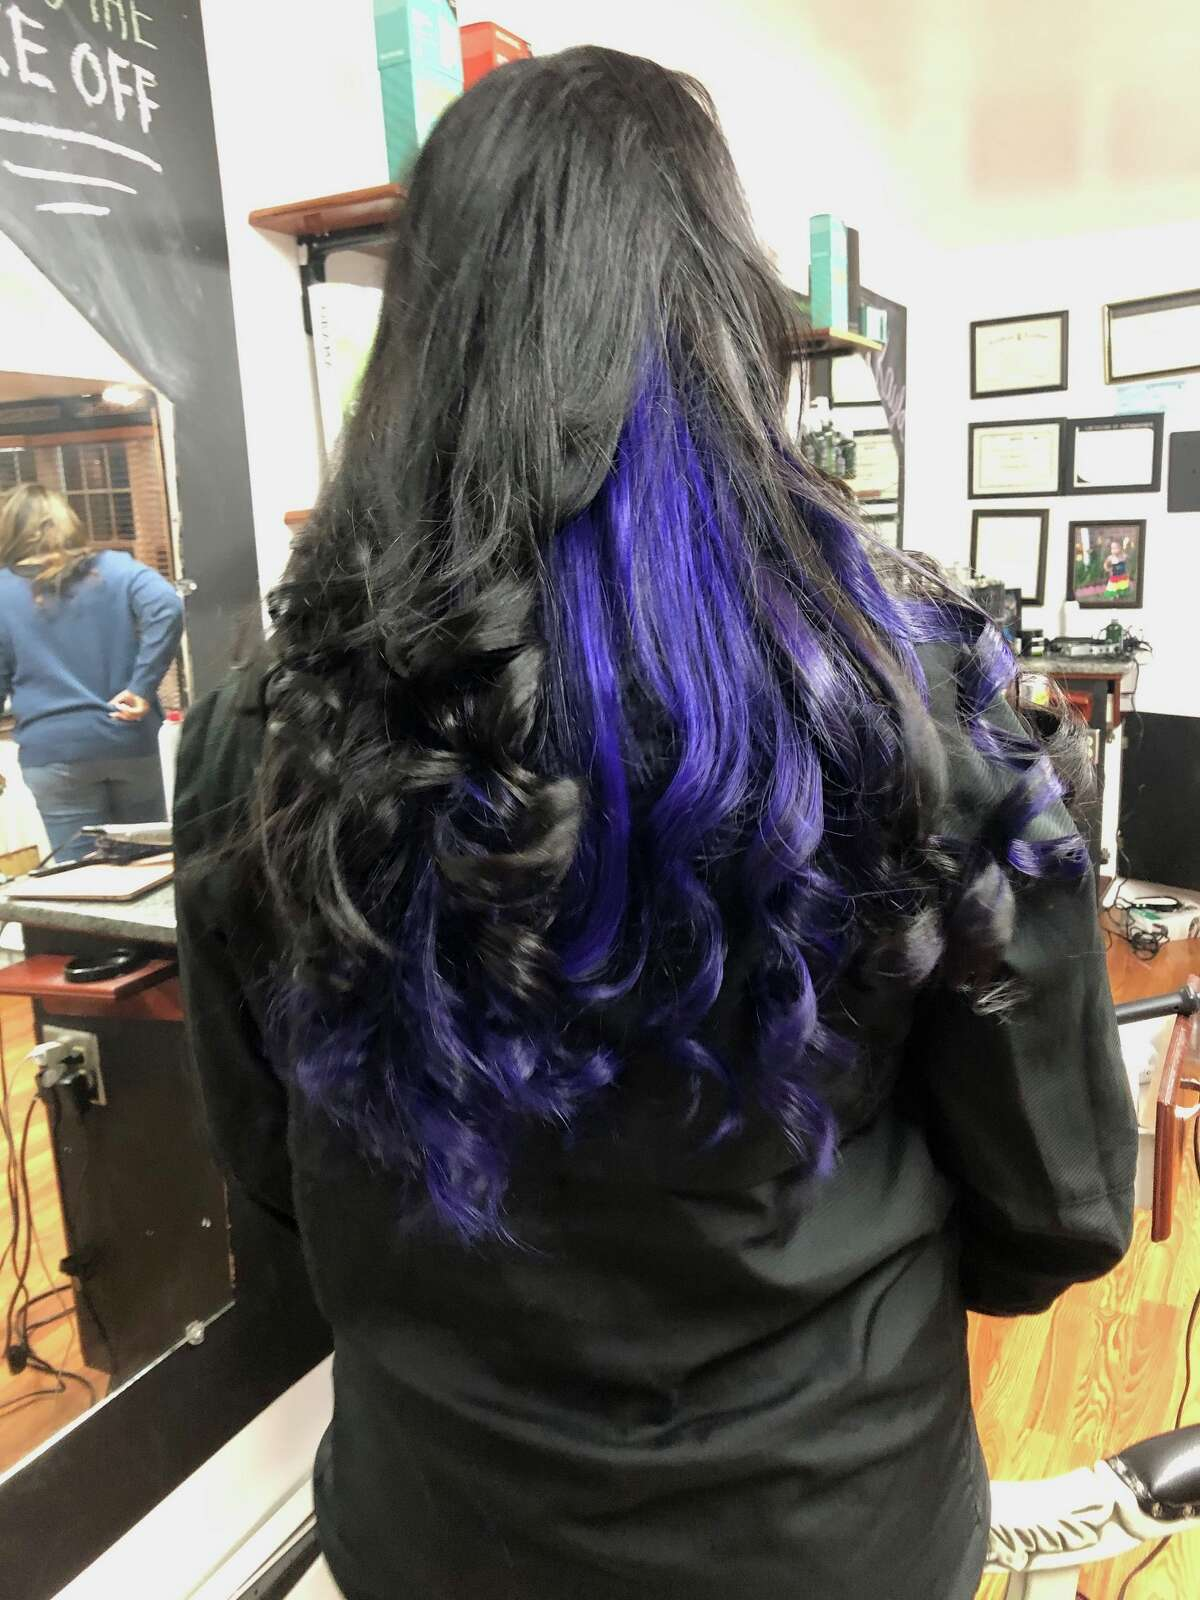 Owner of Main Switch Salon Sonia Santavenere said as the COVID-19 pandemic waned, customers were coming in to her Middletown and Norwalk locations requesting drastic changes, like this one customer who dyed the underside of her hair purple.